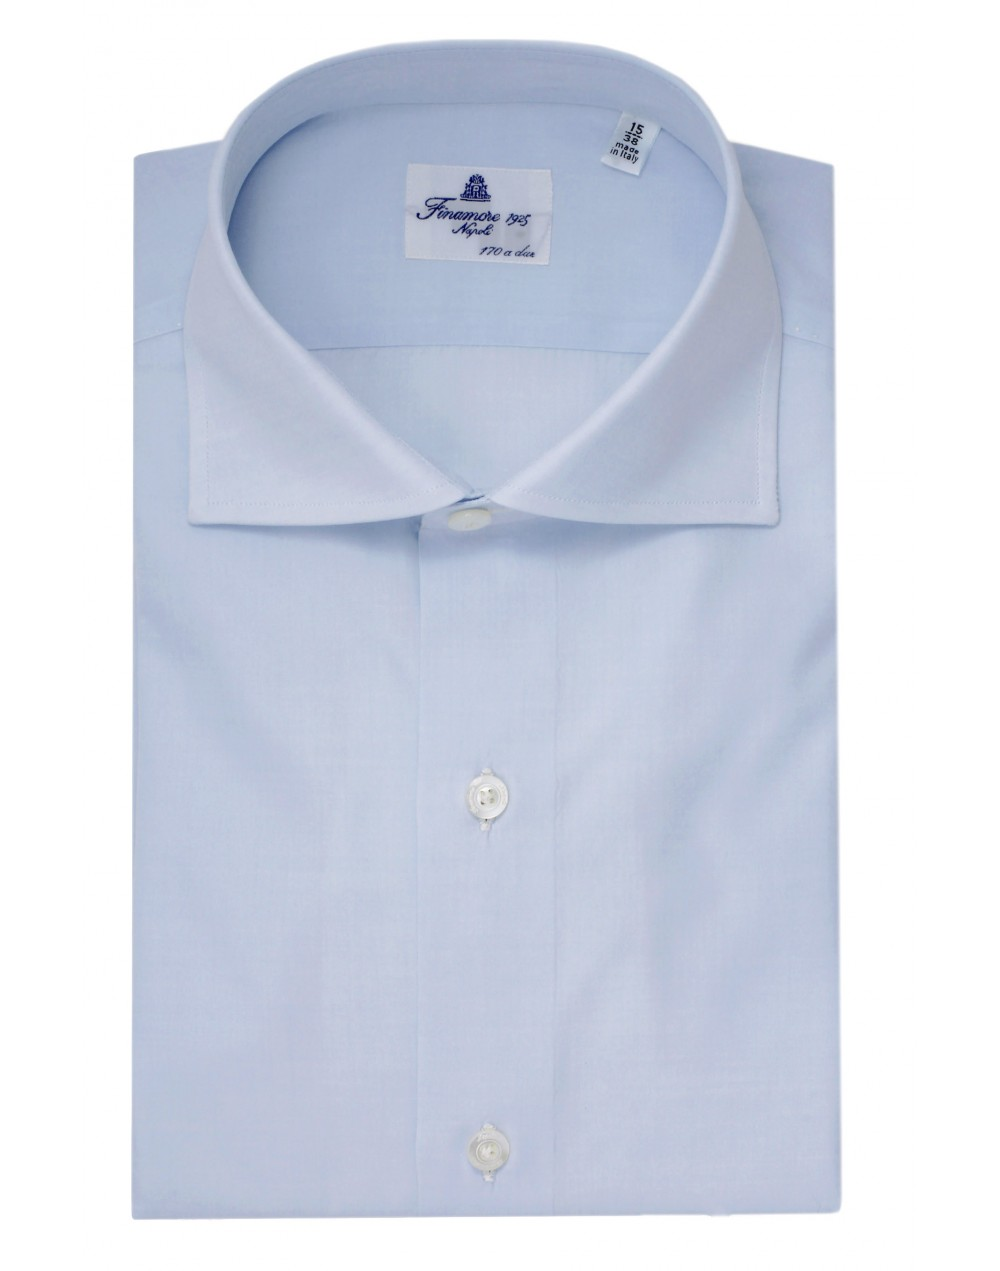 Dress shirt Napoli170/2 spread collar Zante Light blue